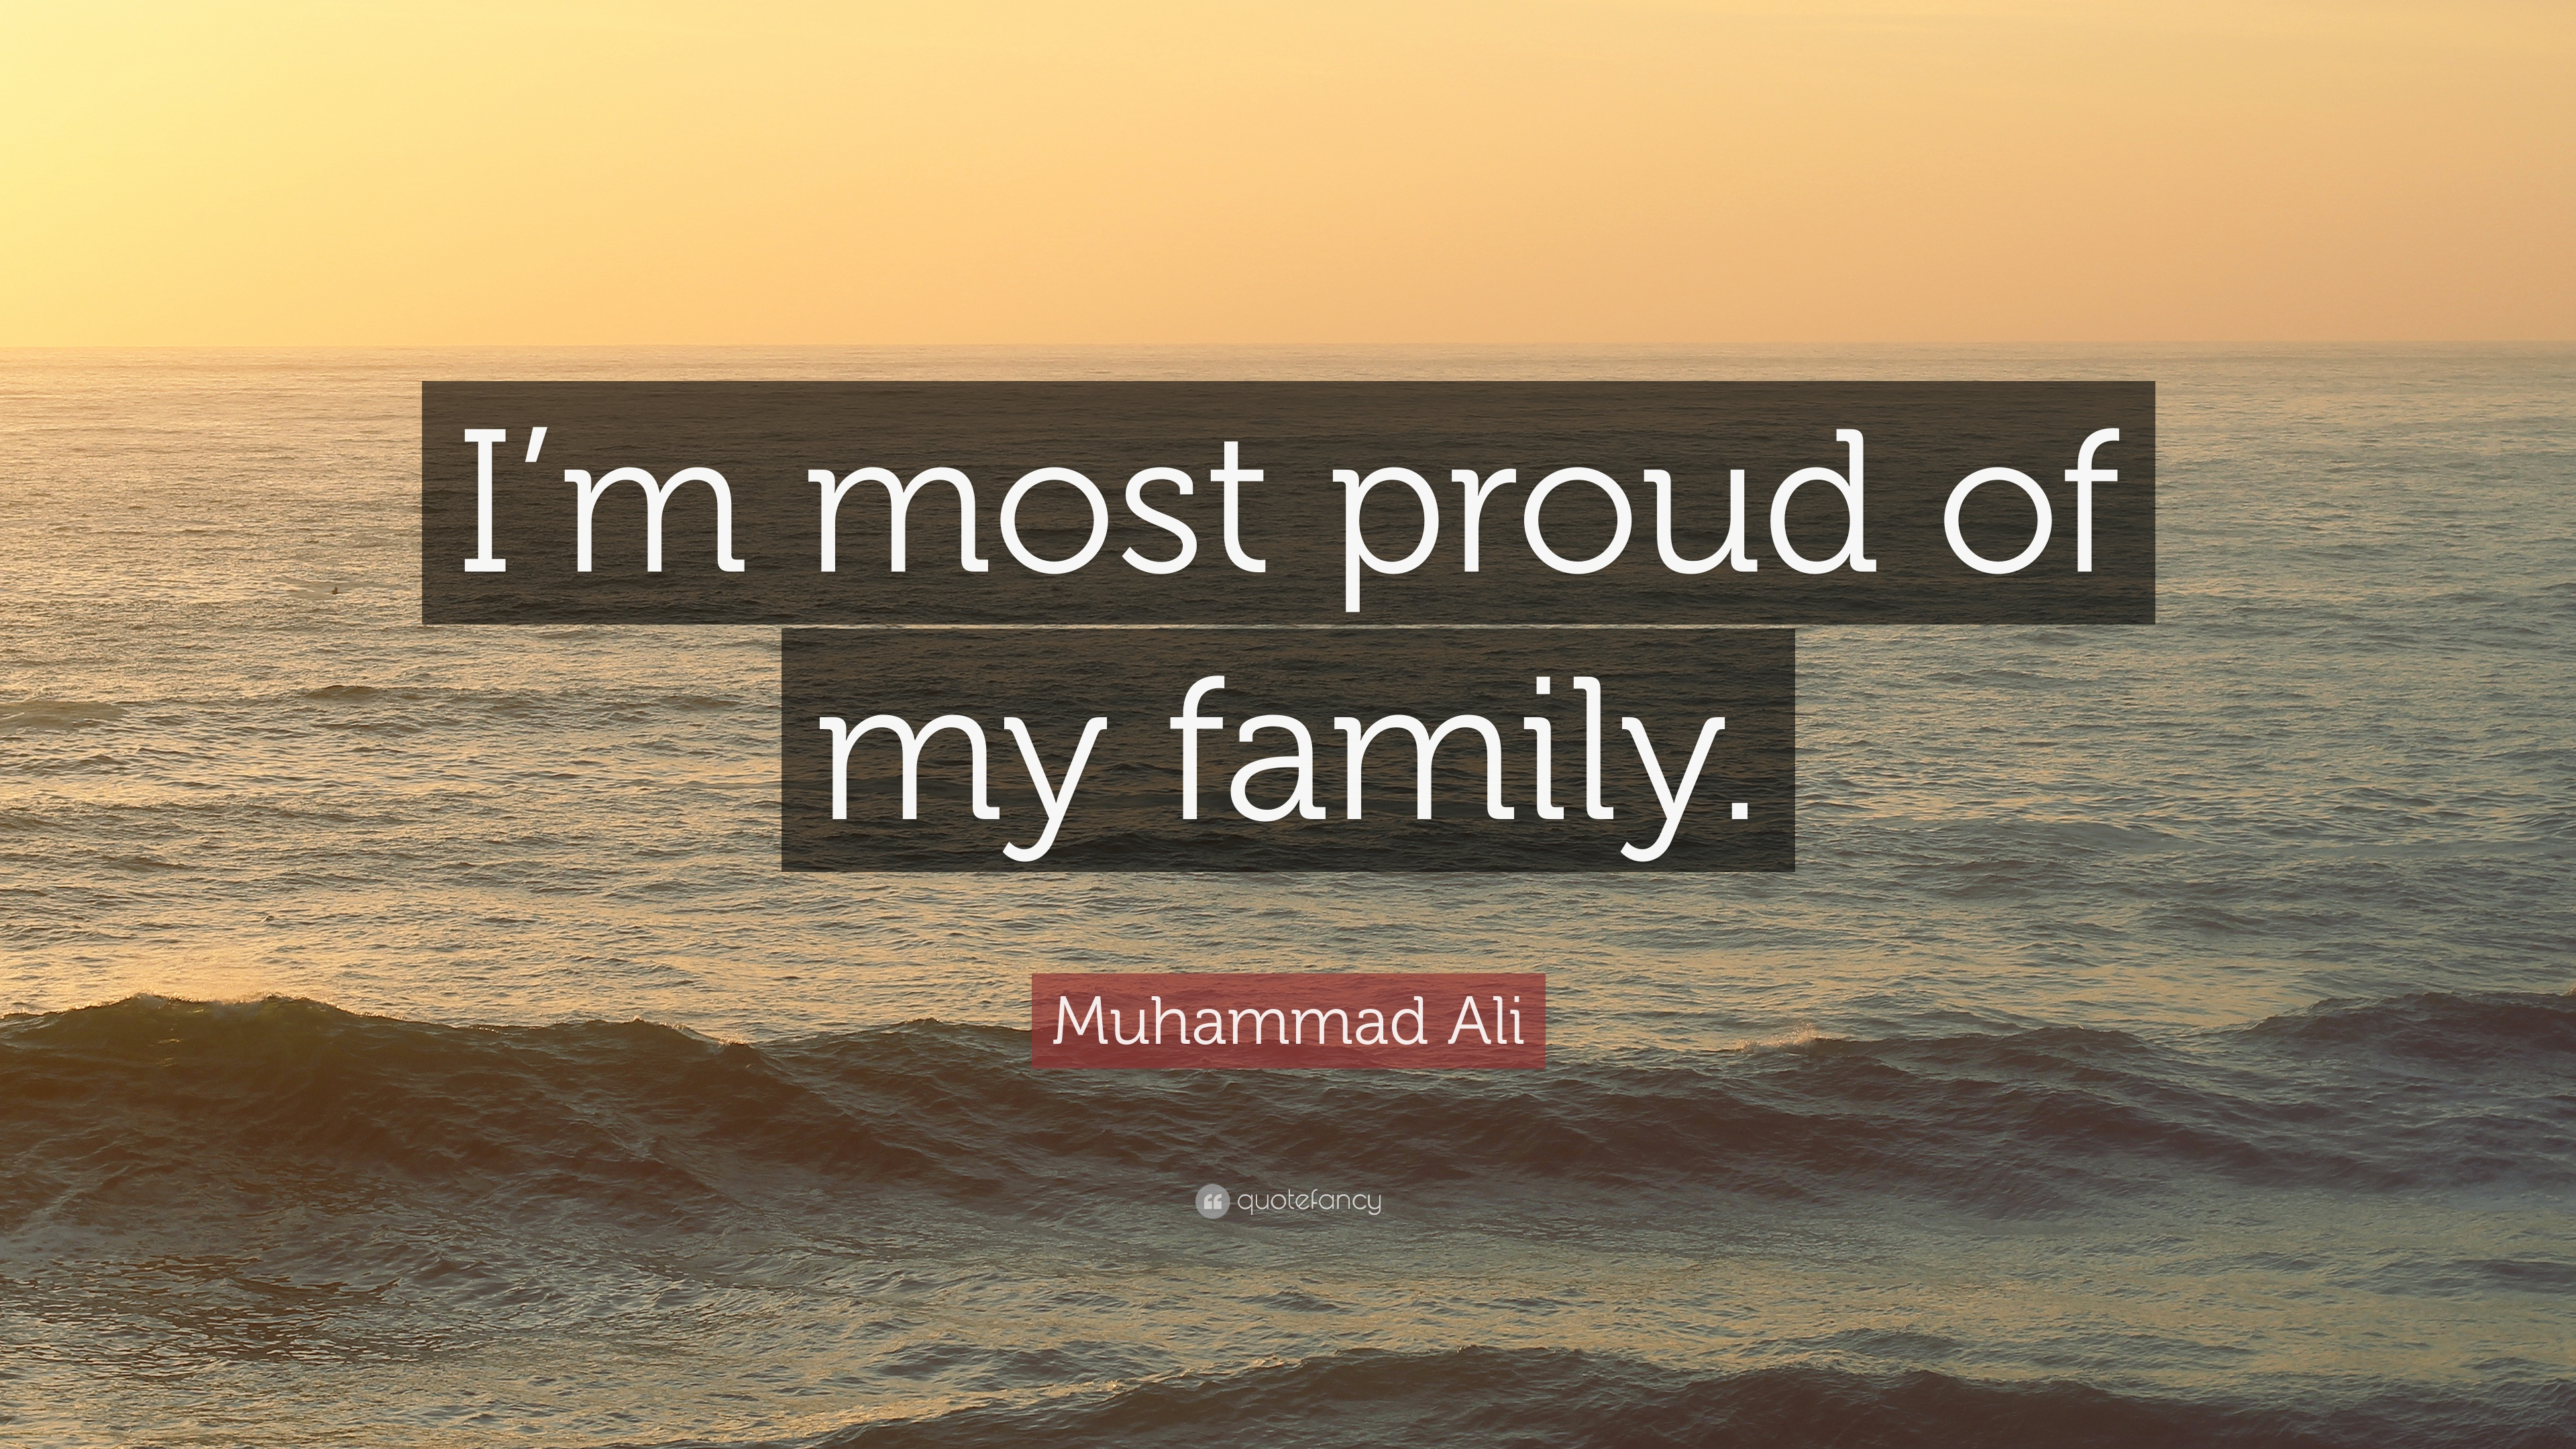 Inspirational Quotes About Family: Muhammad Ali Quotes (100 Wallpapers)